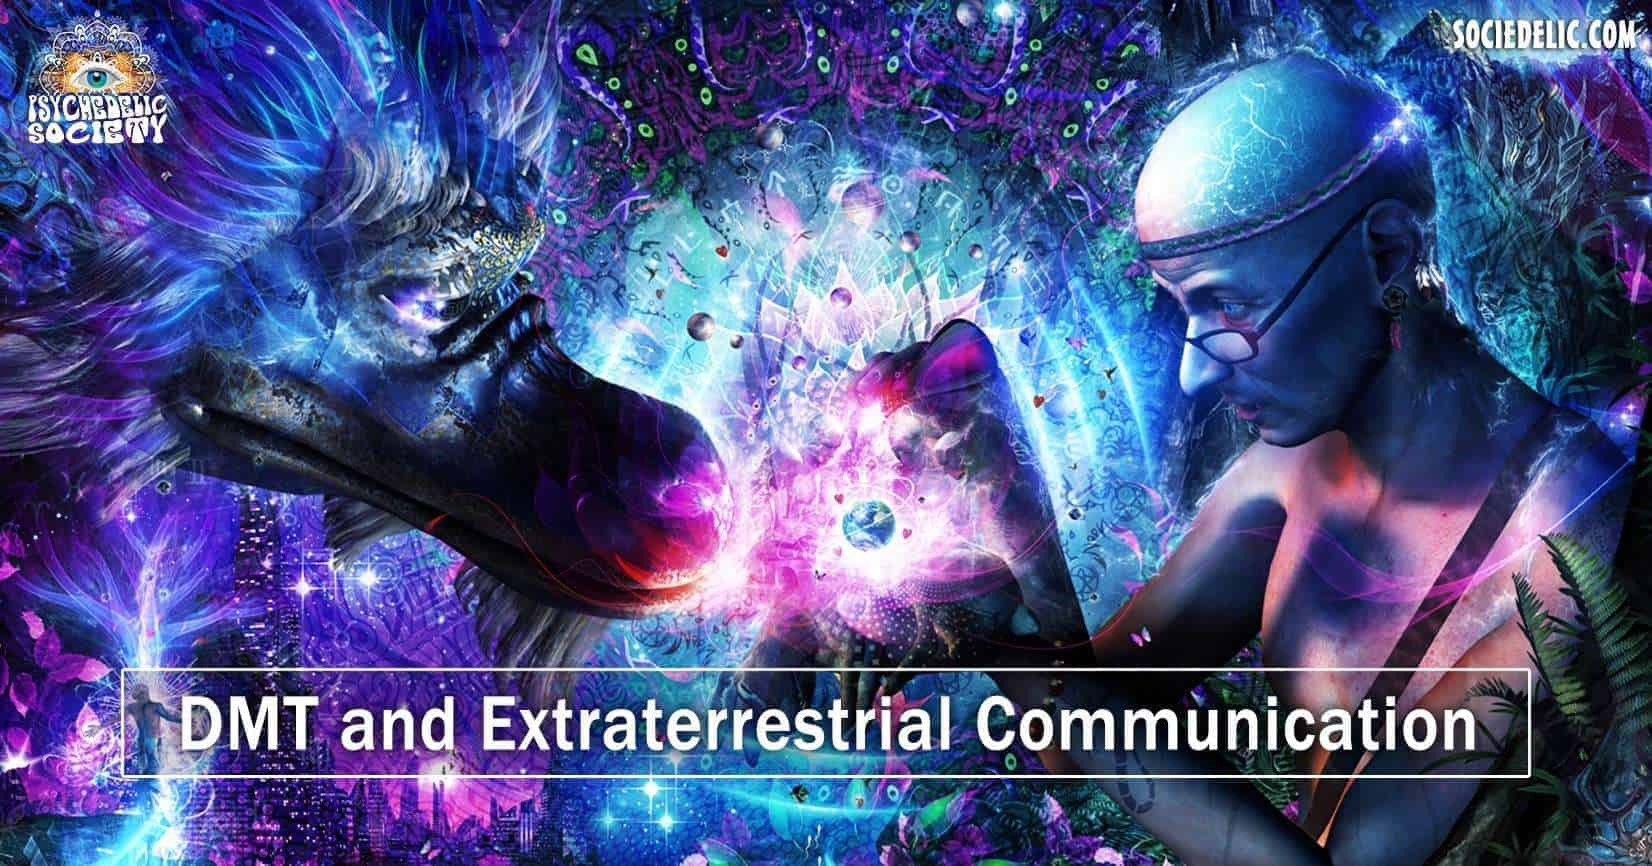 Lsd Trip Wallpaper Hd Dmt And Extraterrestrial Communication Psychedelic